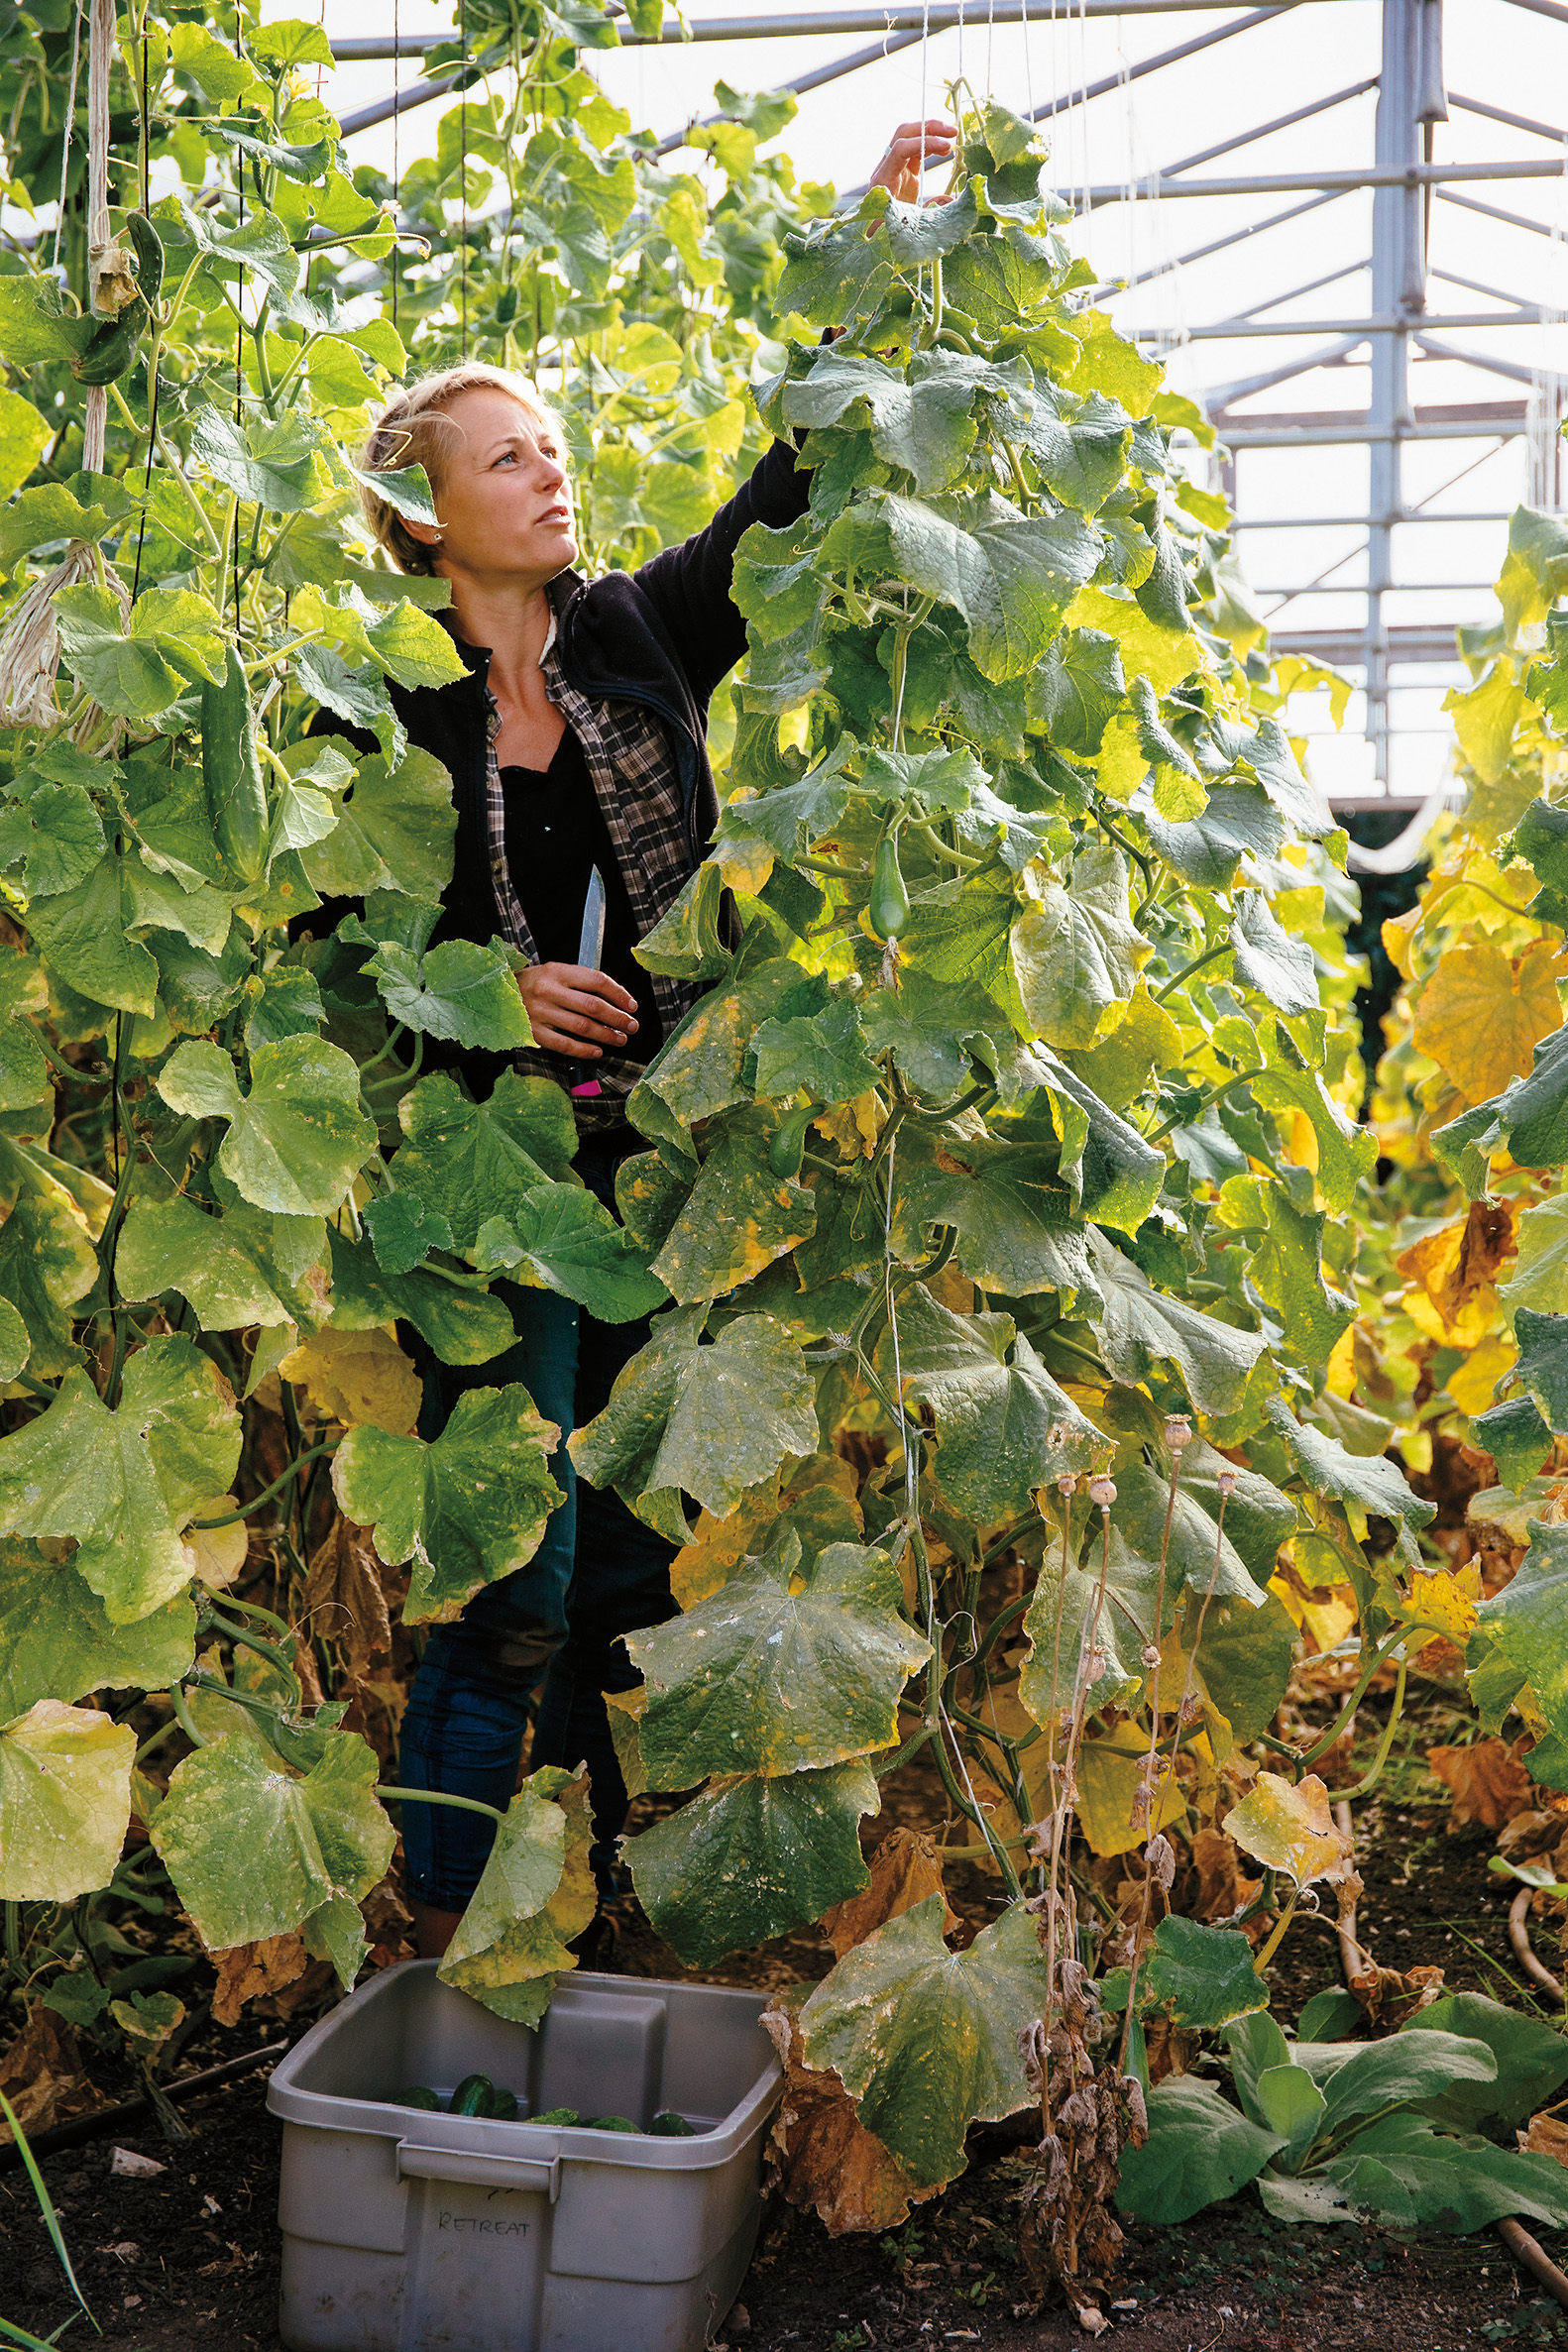 Thea taming the vines.